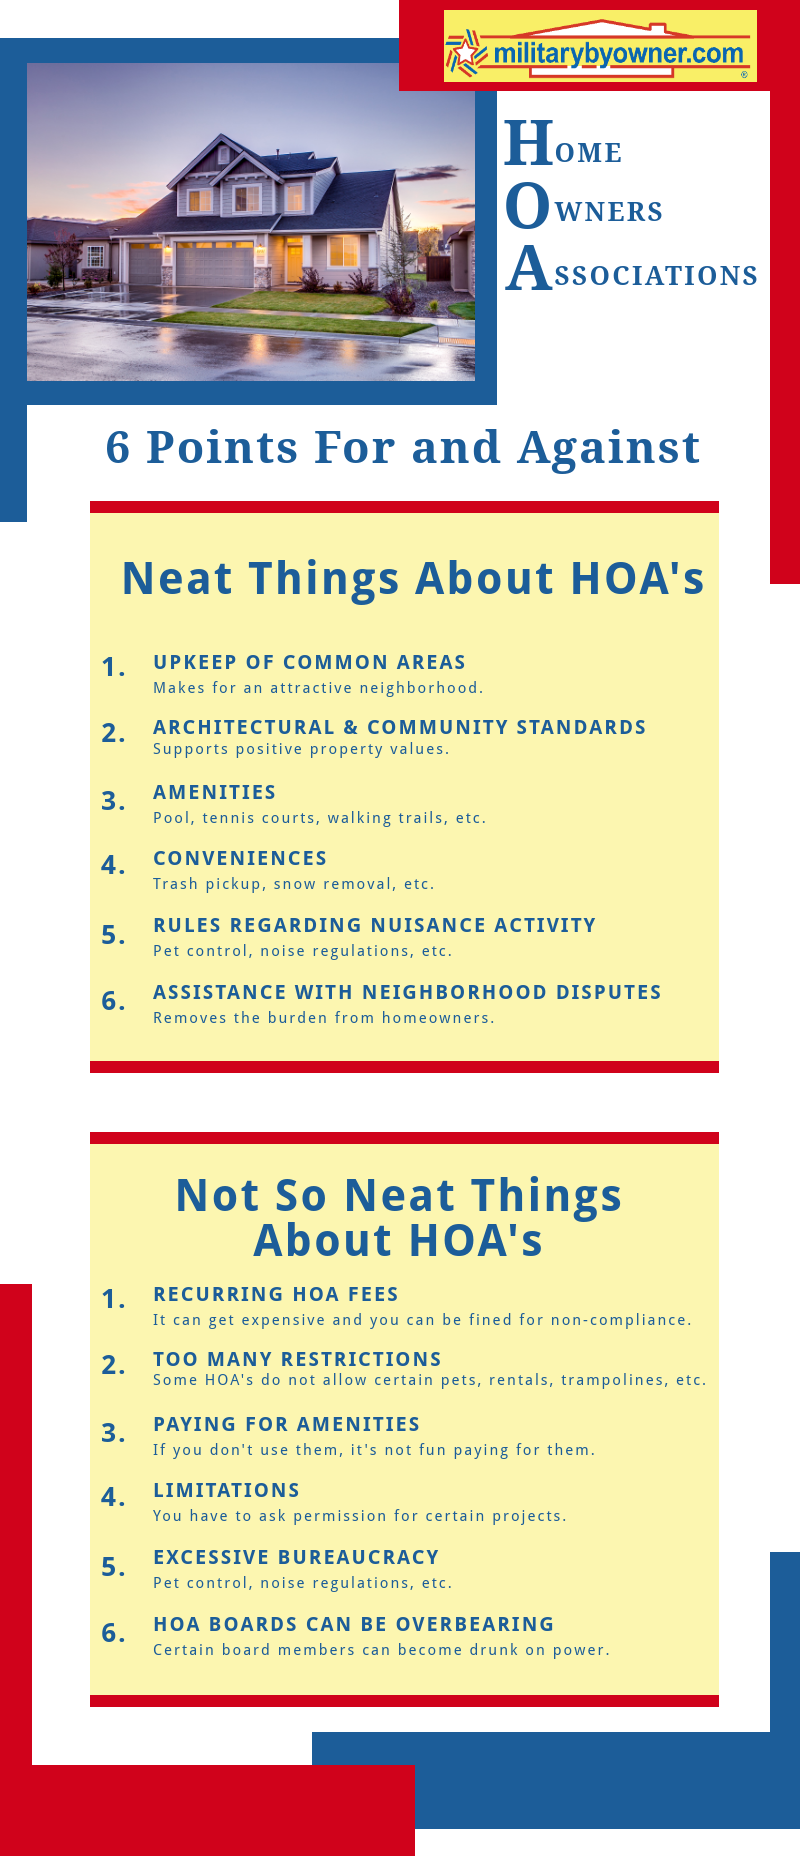 HOA Pros and Cons